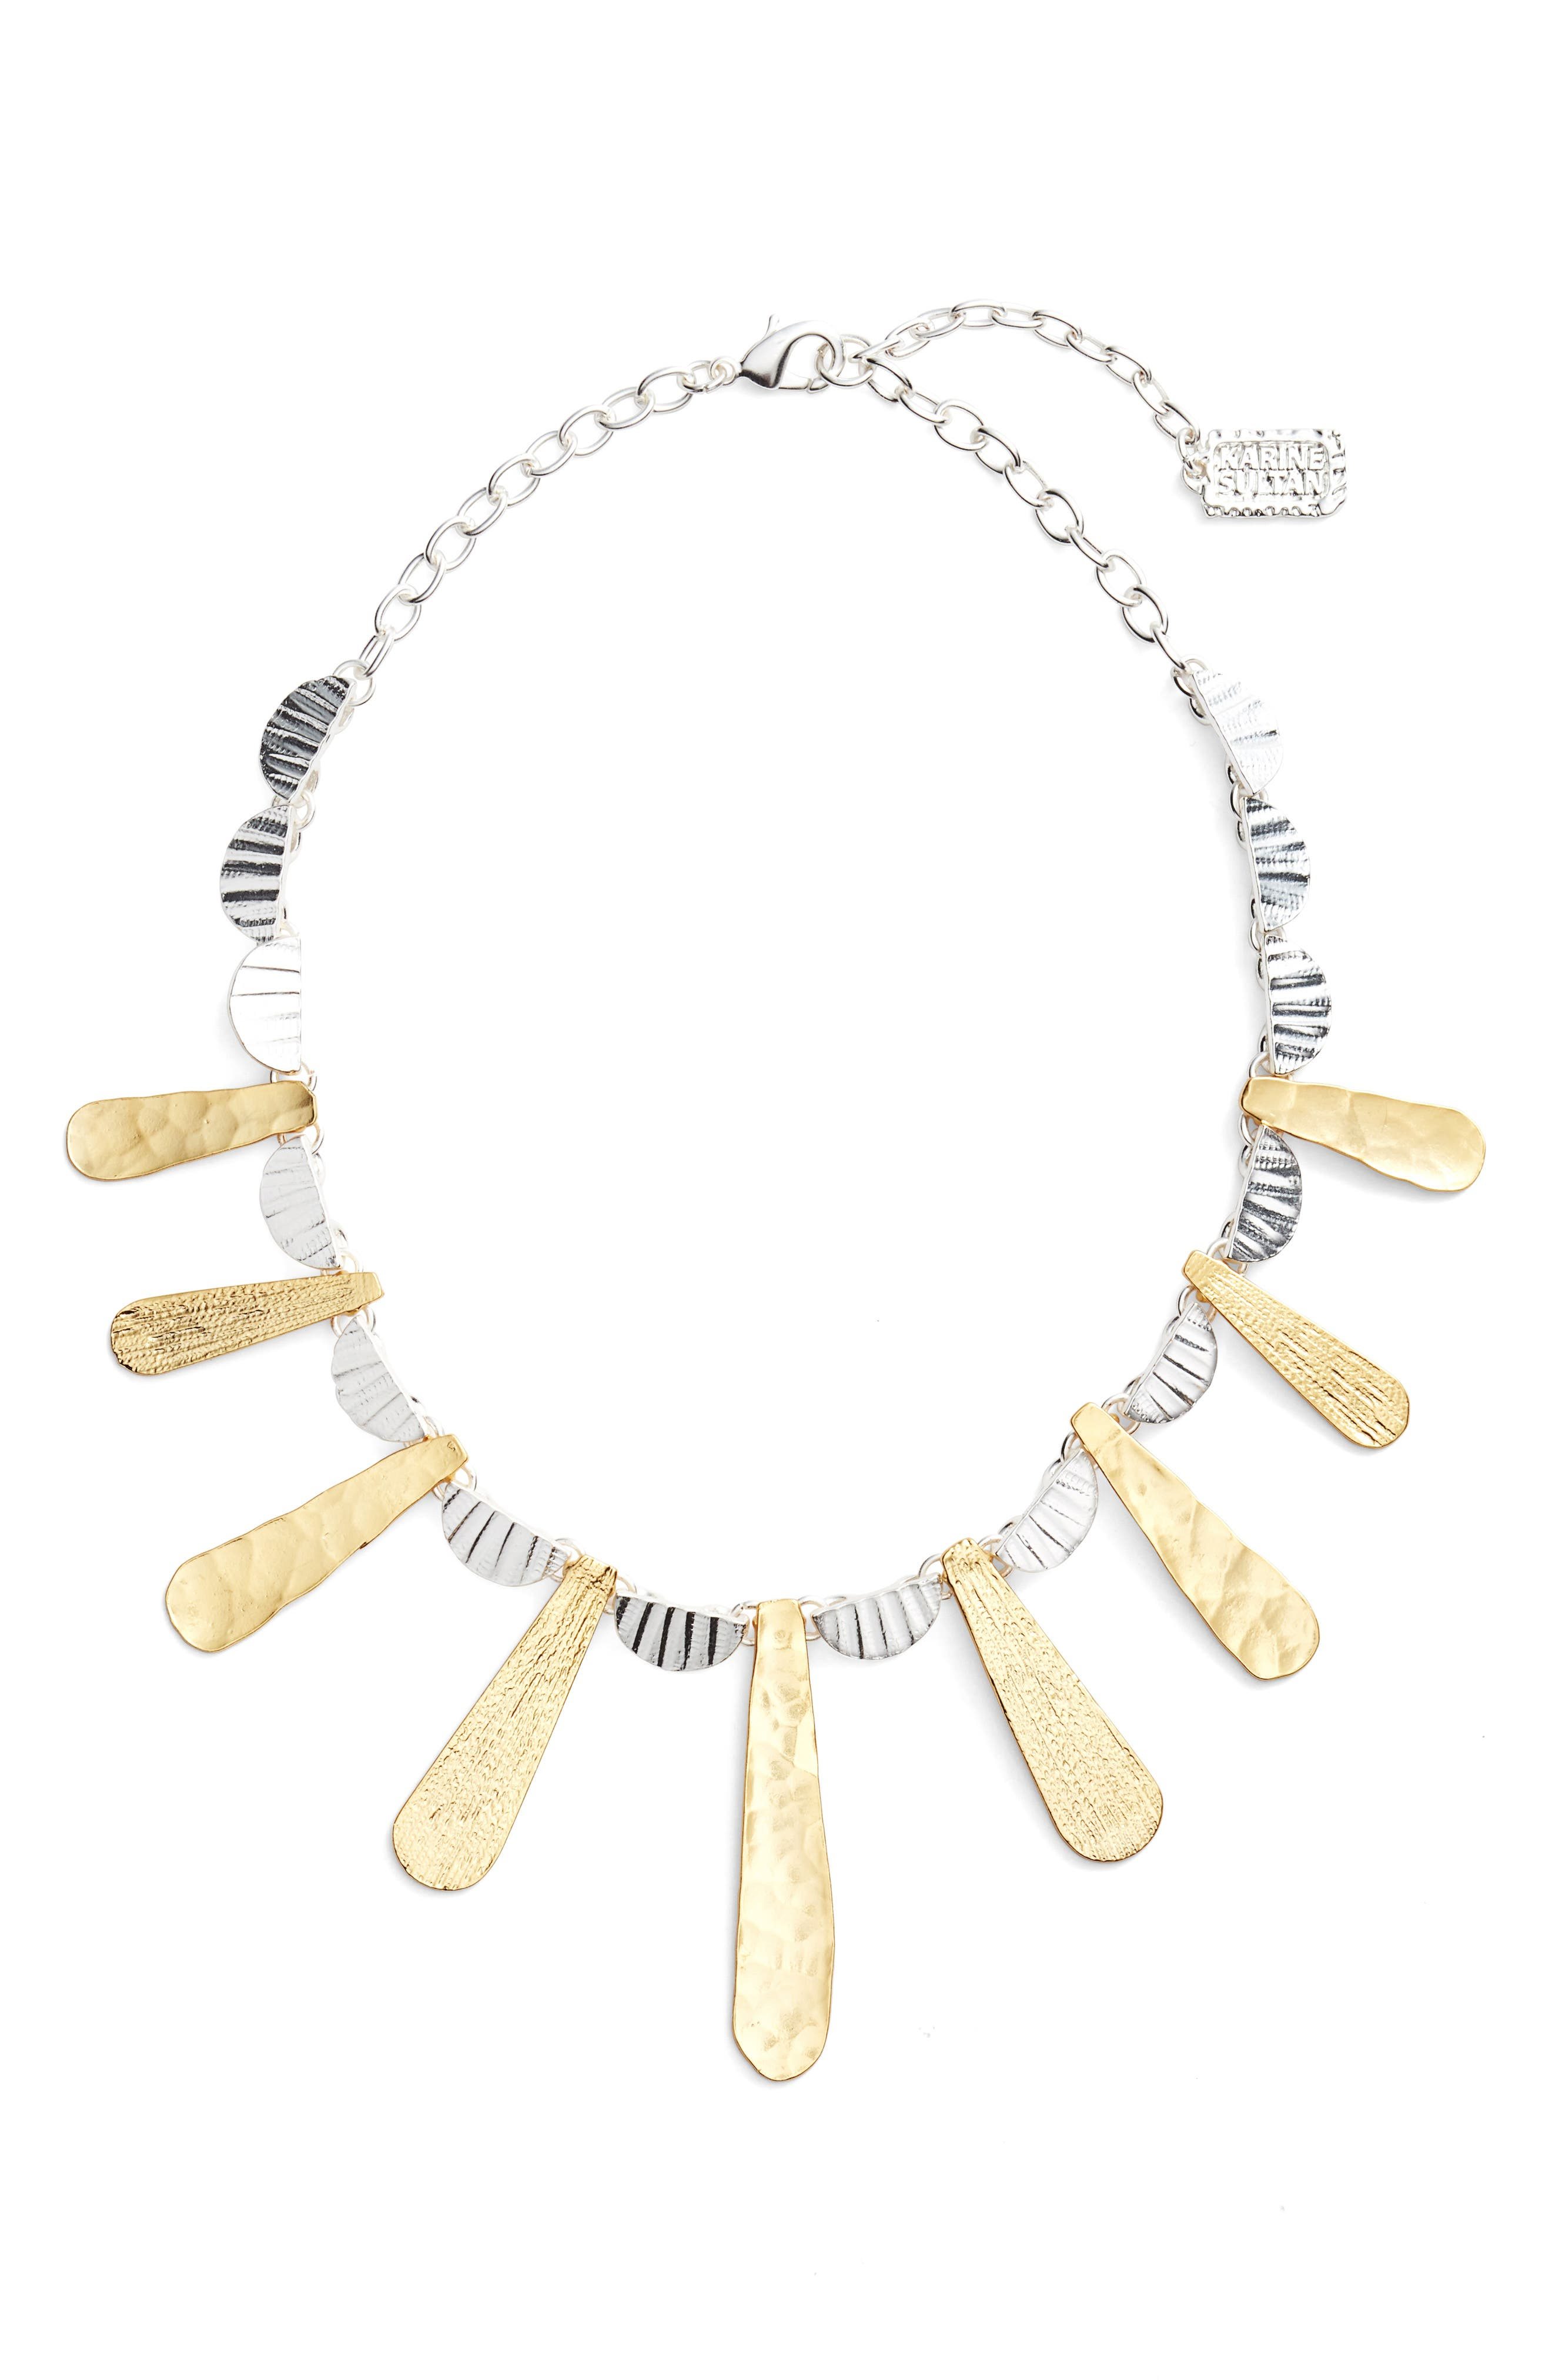 Hammered Collar Necklace,                             Main thumbnail 1, color,                             SILVER/GOLD MIX